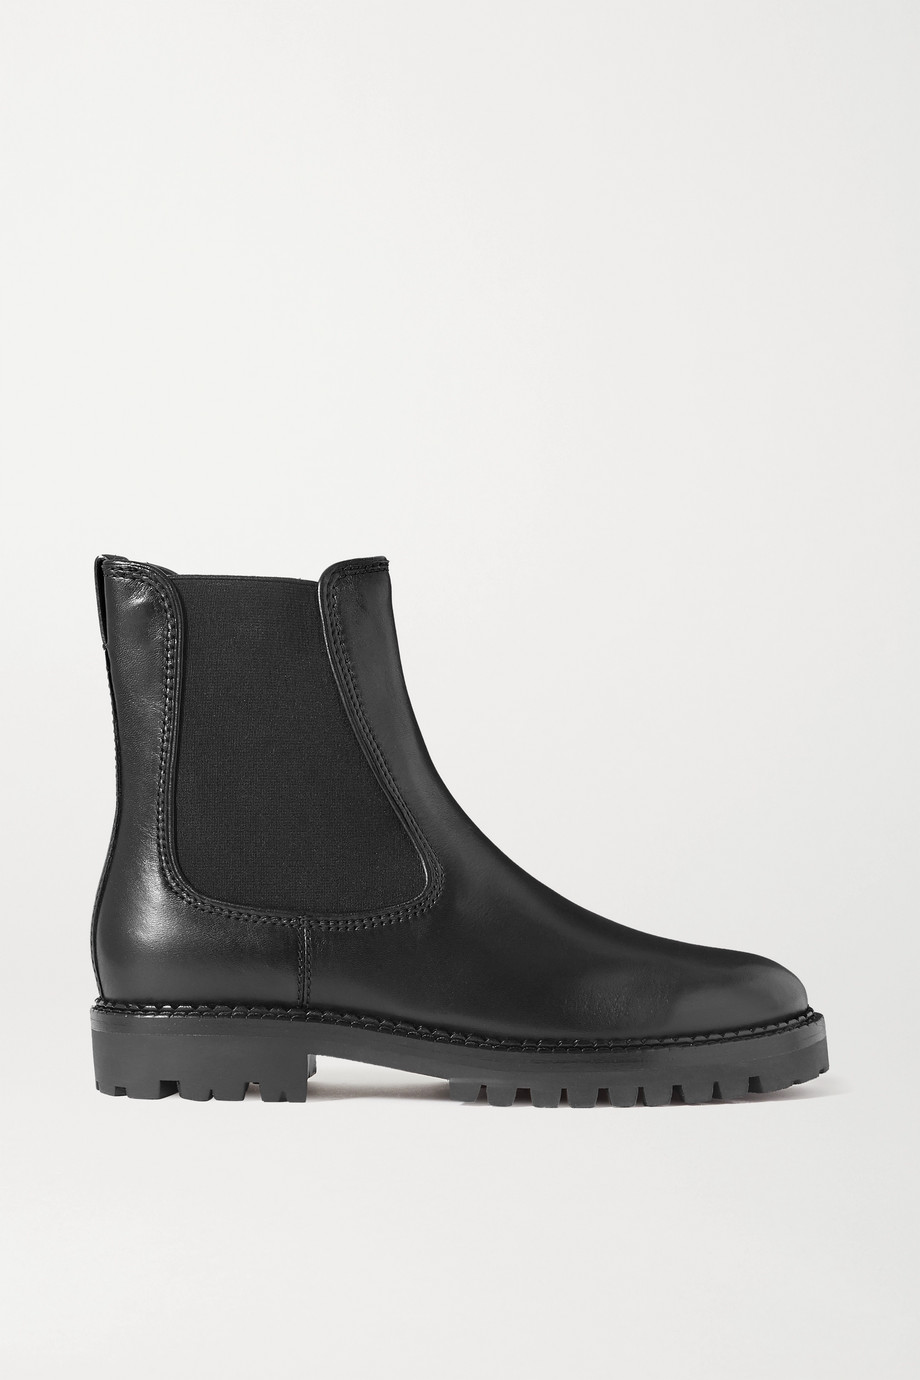 VINCE Carmine leather Chelsea boots